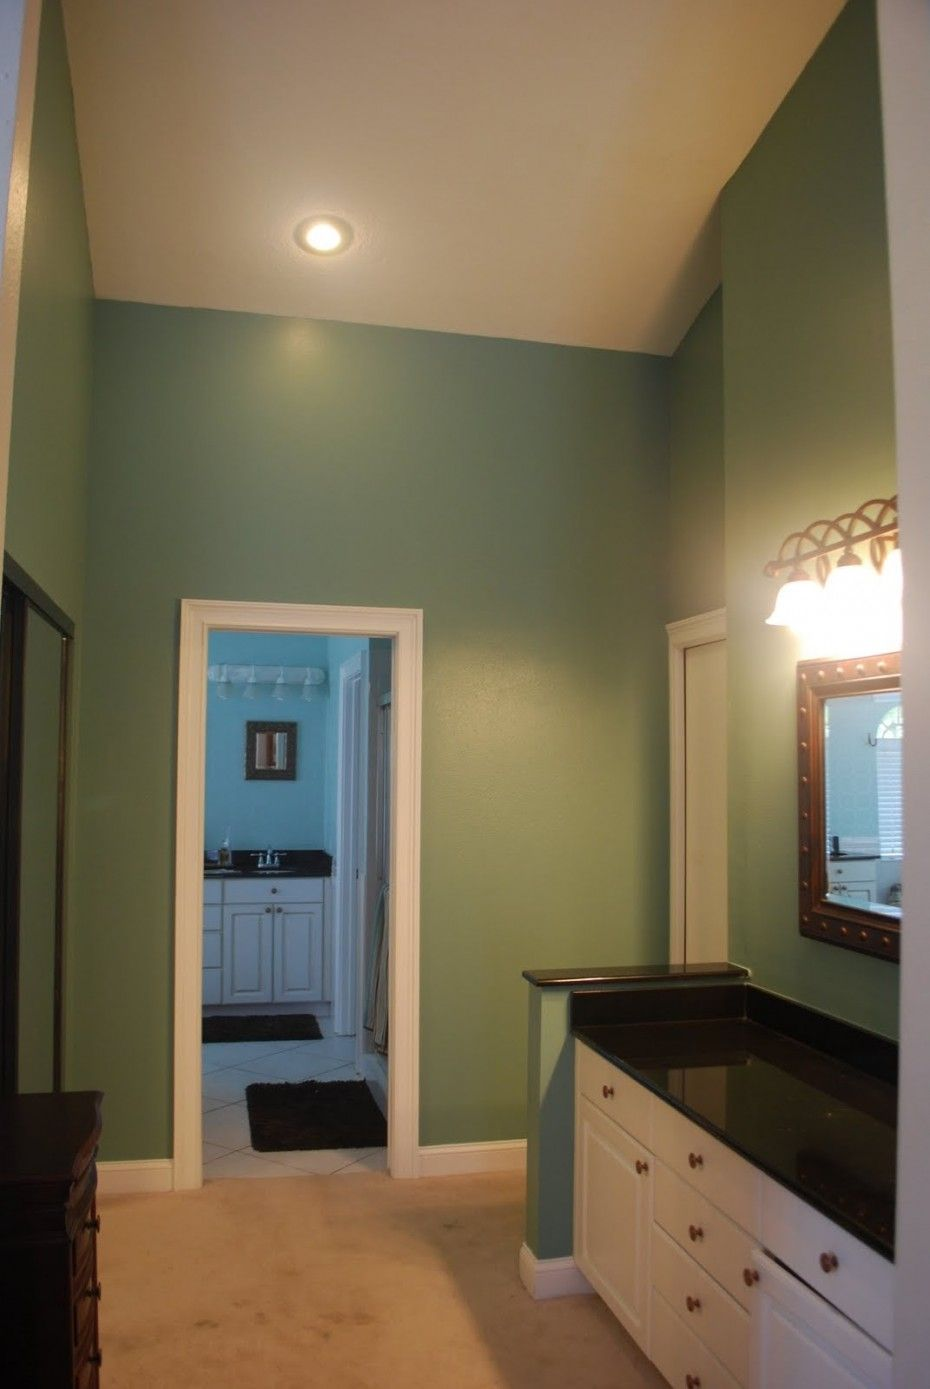 Bathroom paint colors ideas warm green bathroom painting for Bathroom ideas paint colors